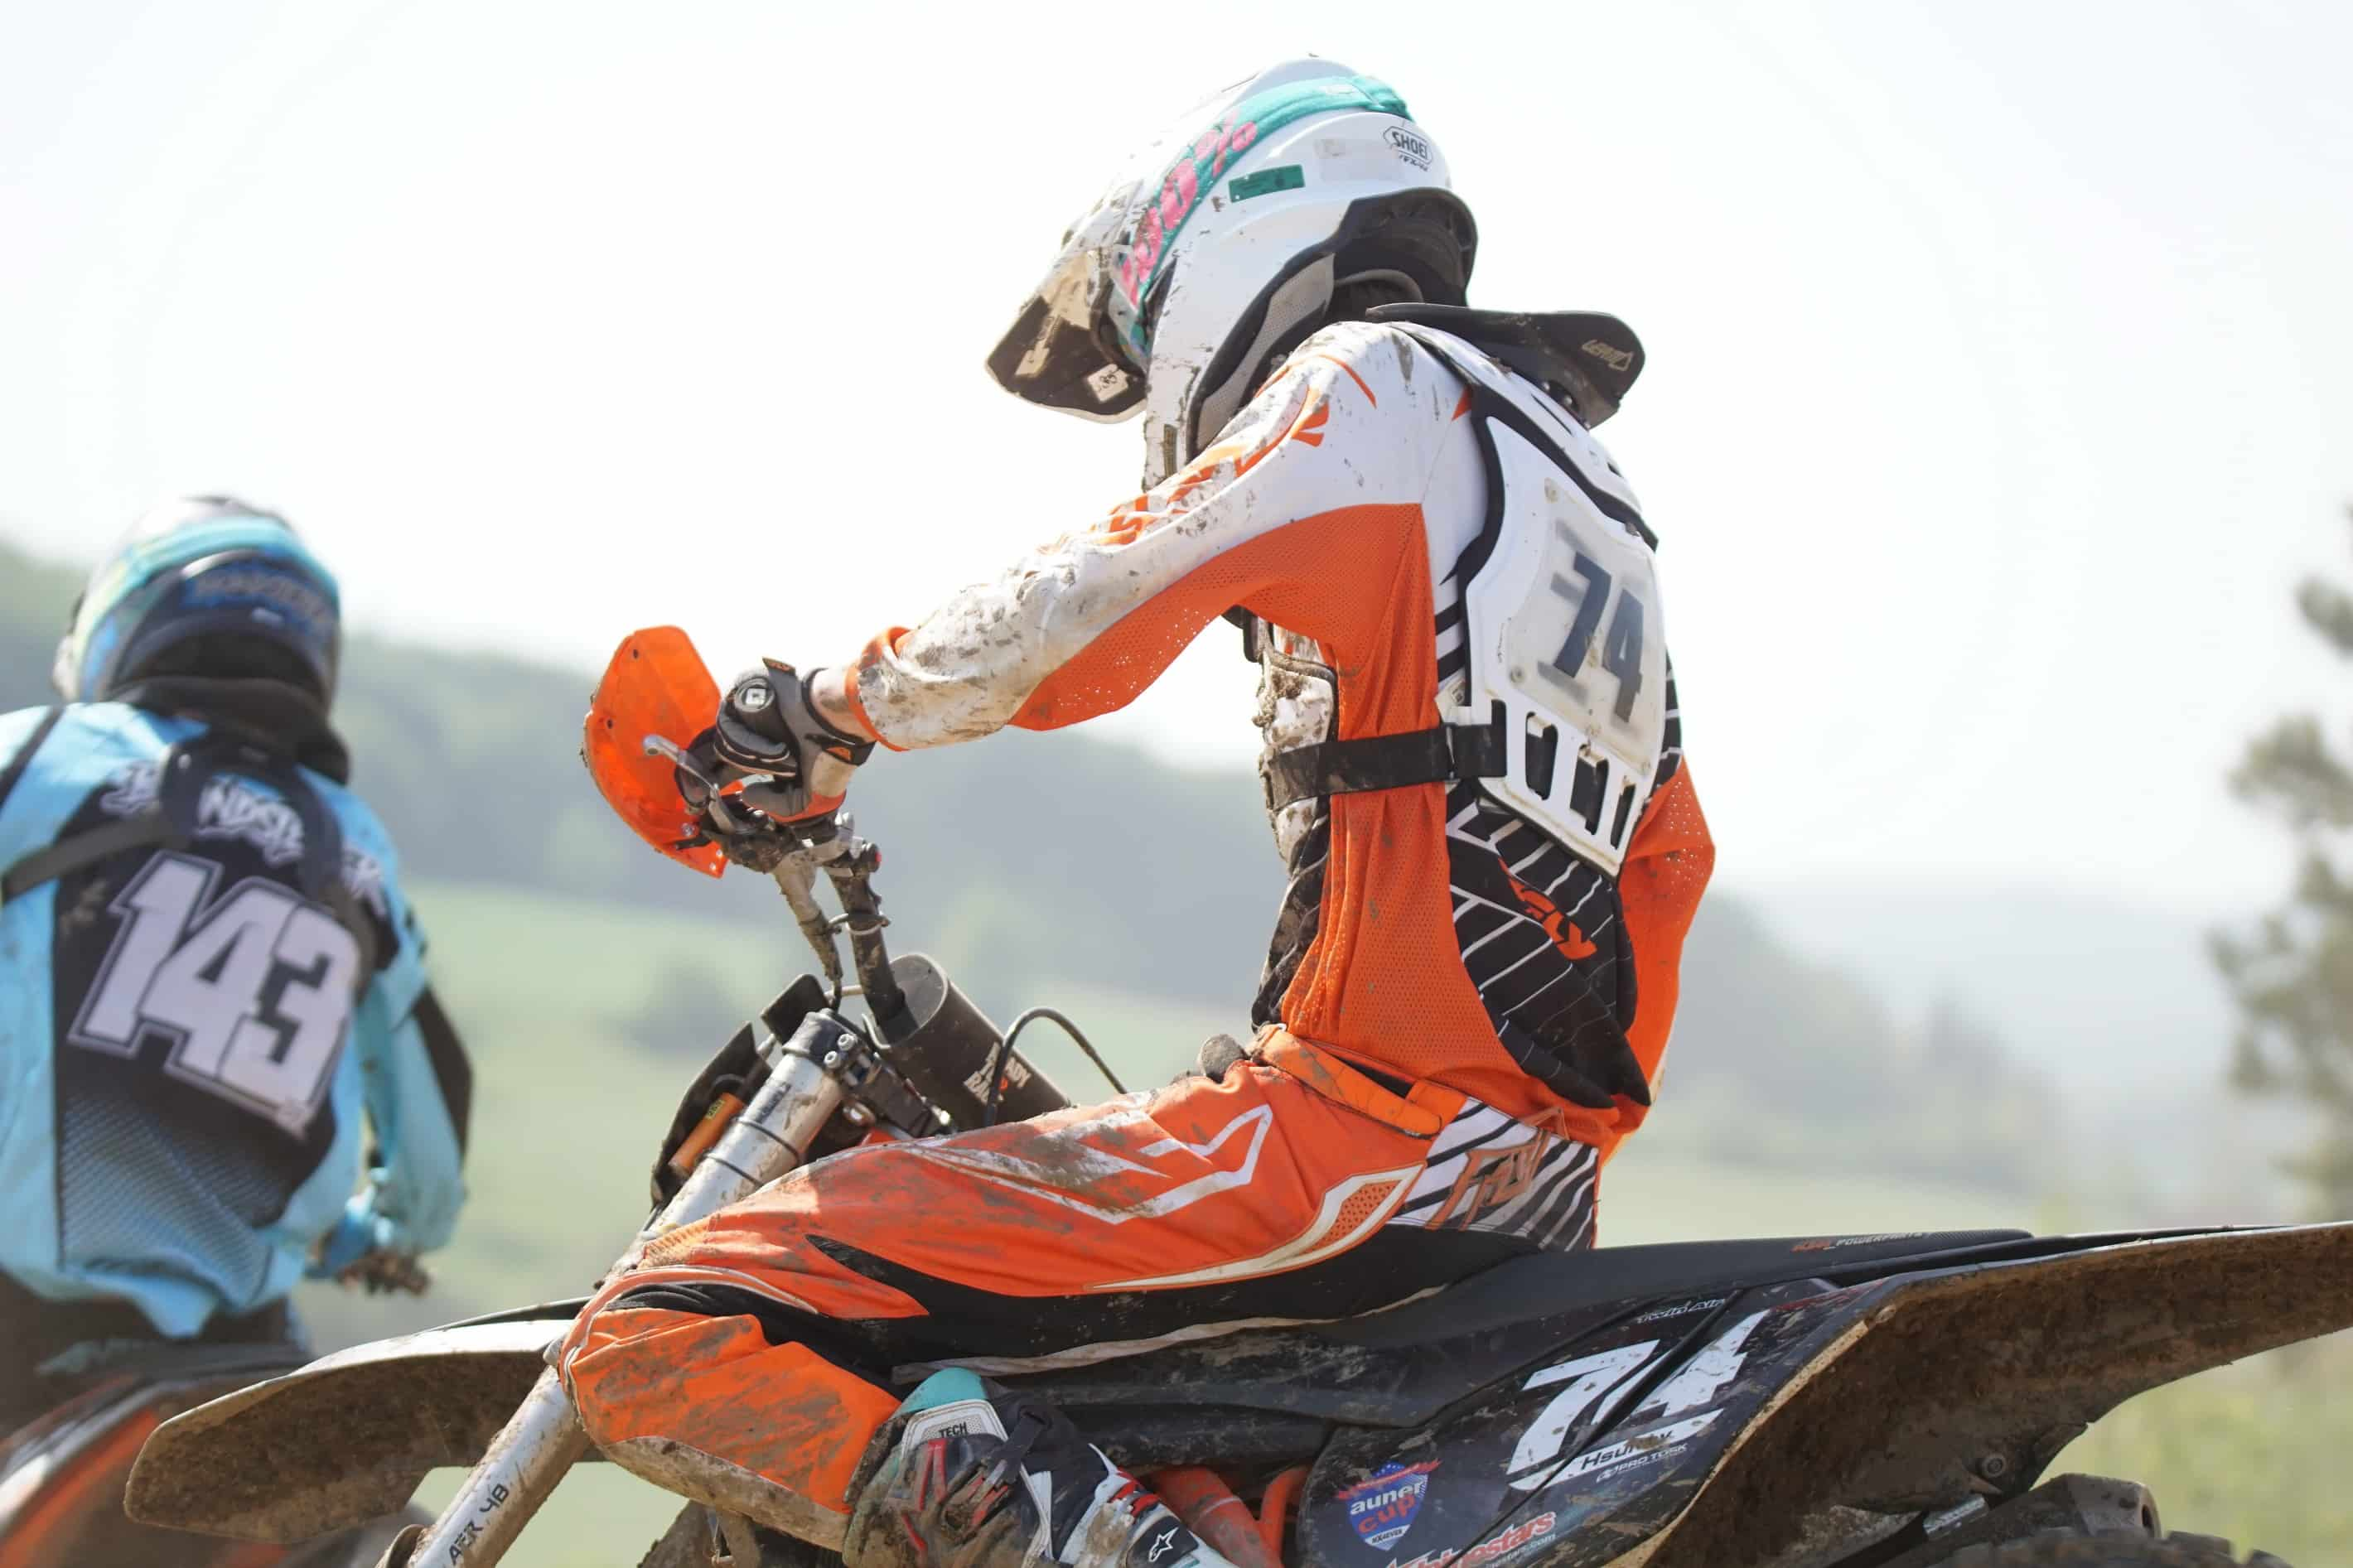 DSC 763_Moto Cross Sittendorf Teil1 am 29.04.2018